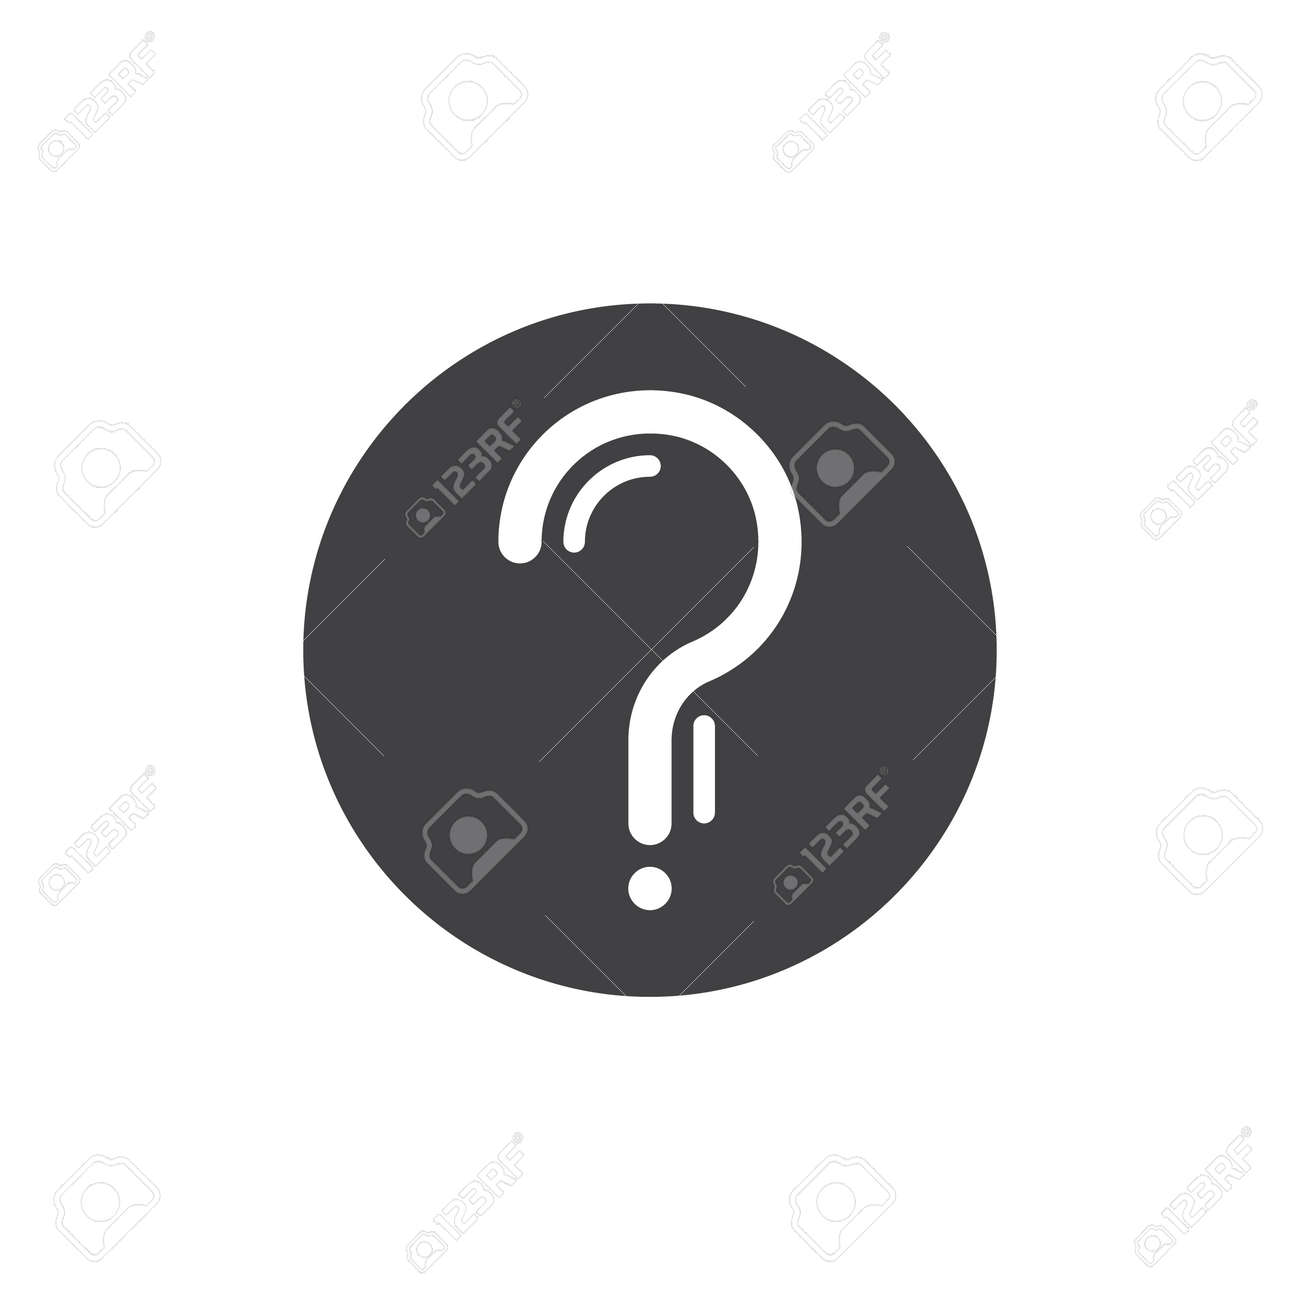 Question mark in a circle simple icon, filled flat sign, solid